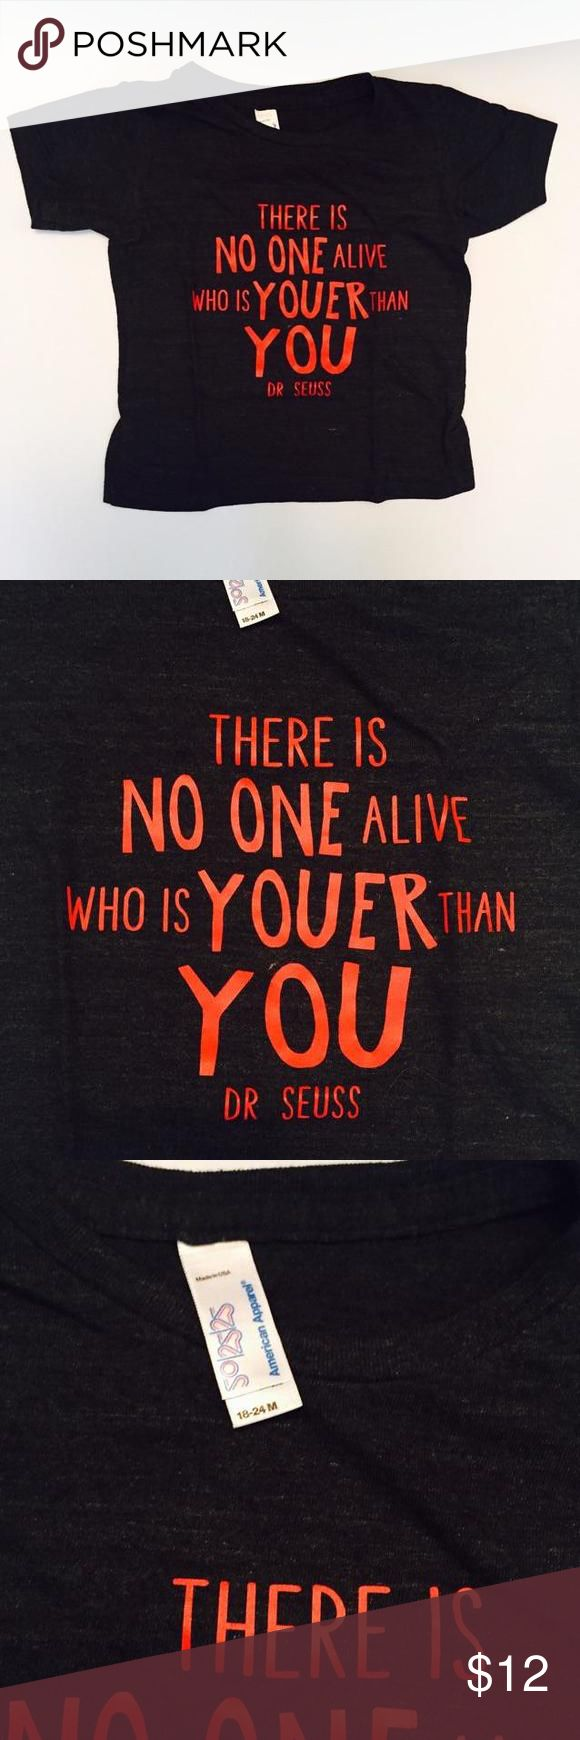 "Dr Seuss Editor's PickGrey ""There Is No One Alive Who Is Youer Than You"" Tee Shirts & Tops"